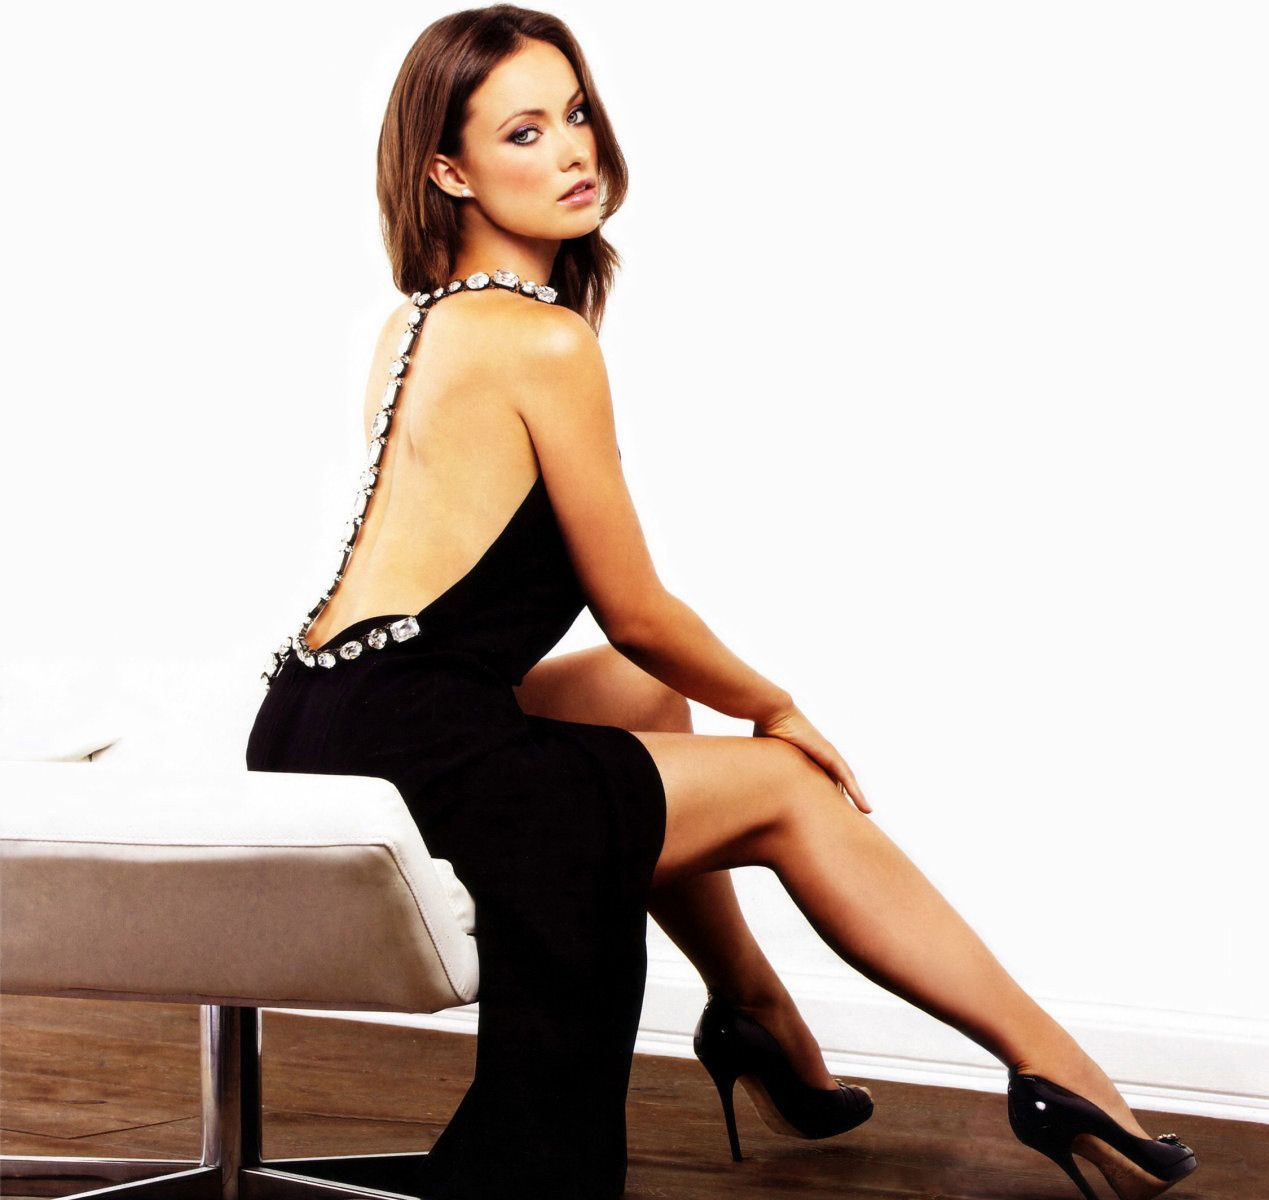 Olivia wilde hot and sexy